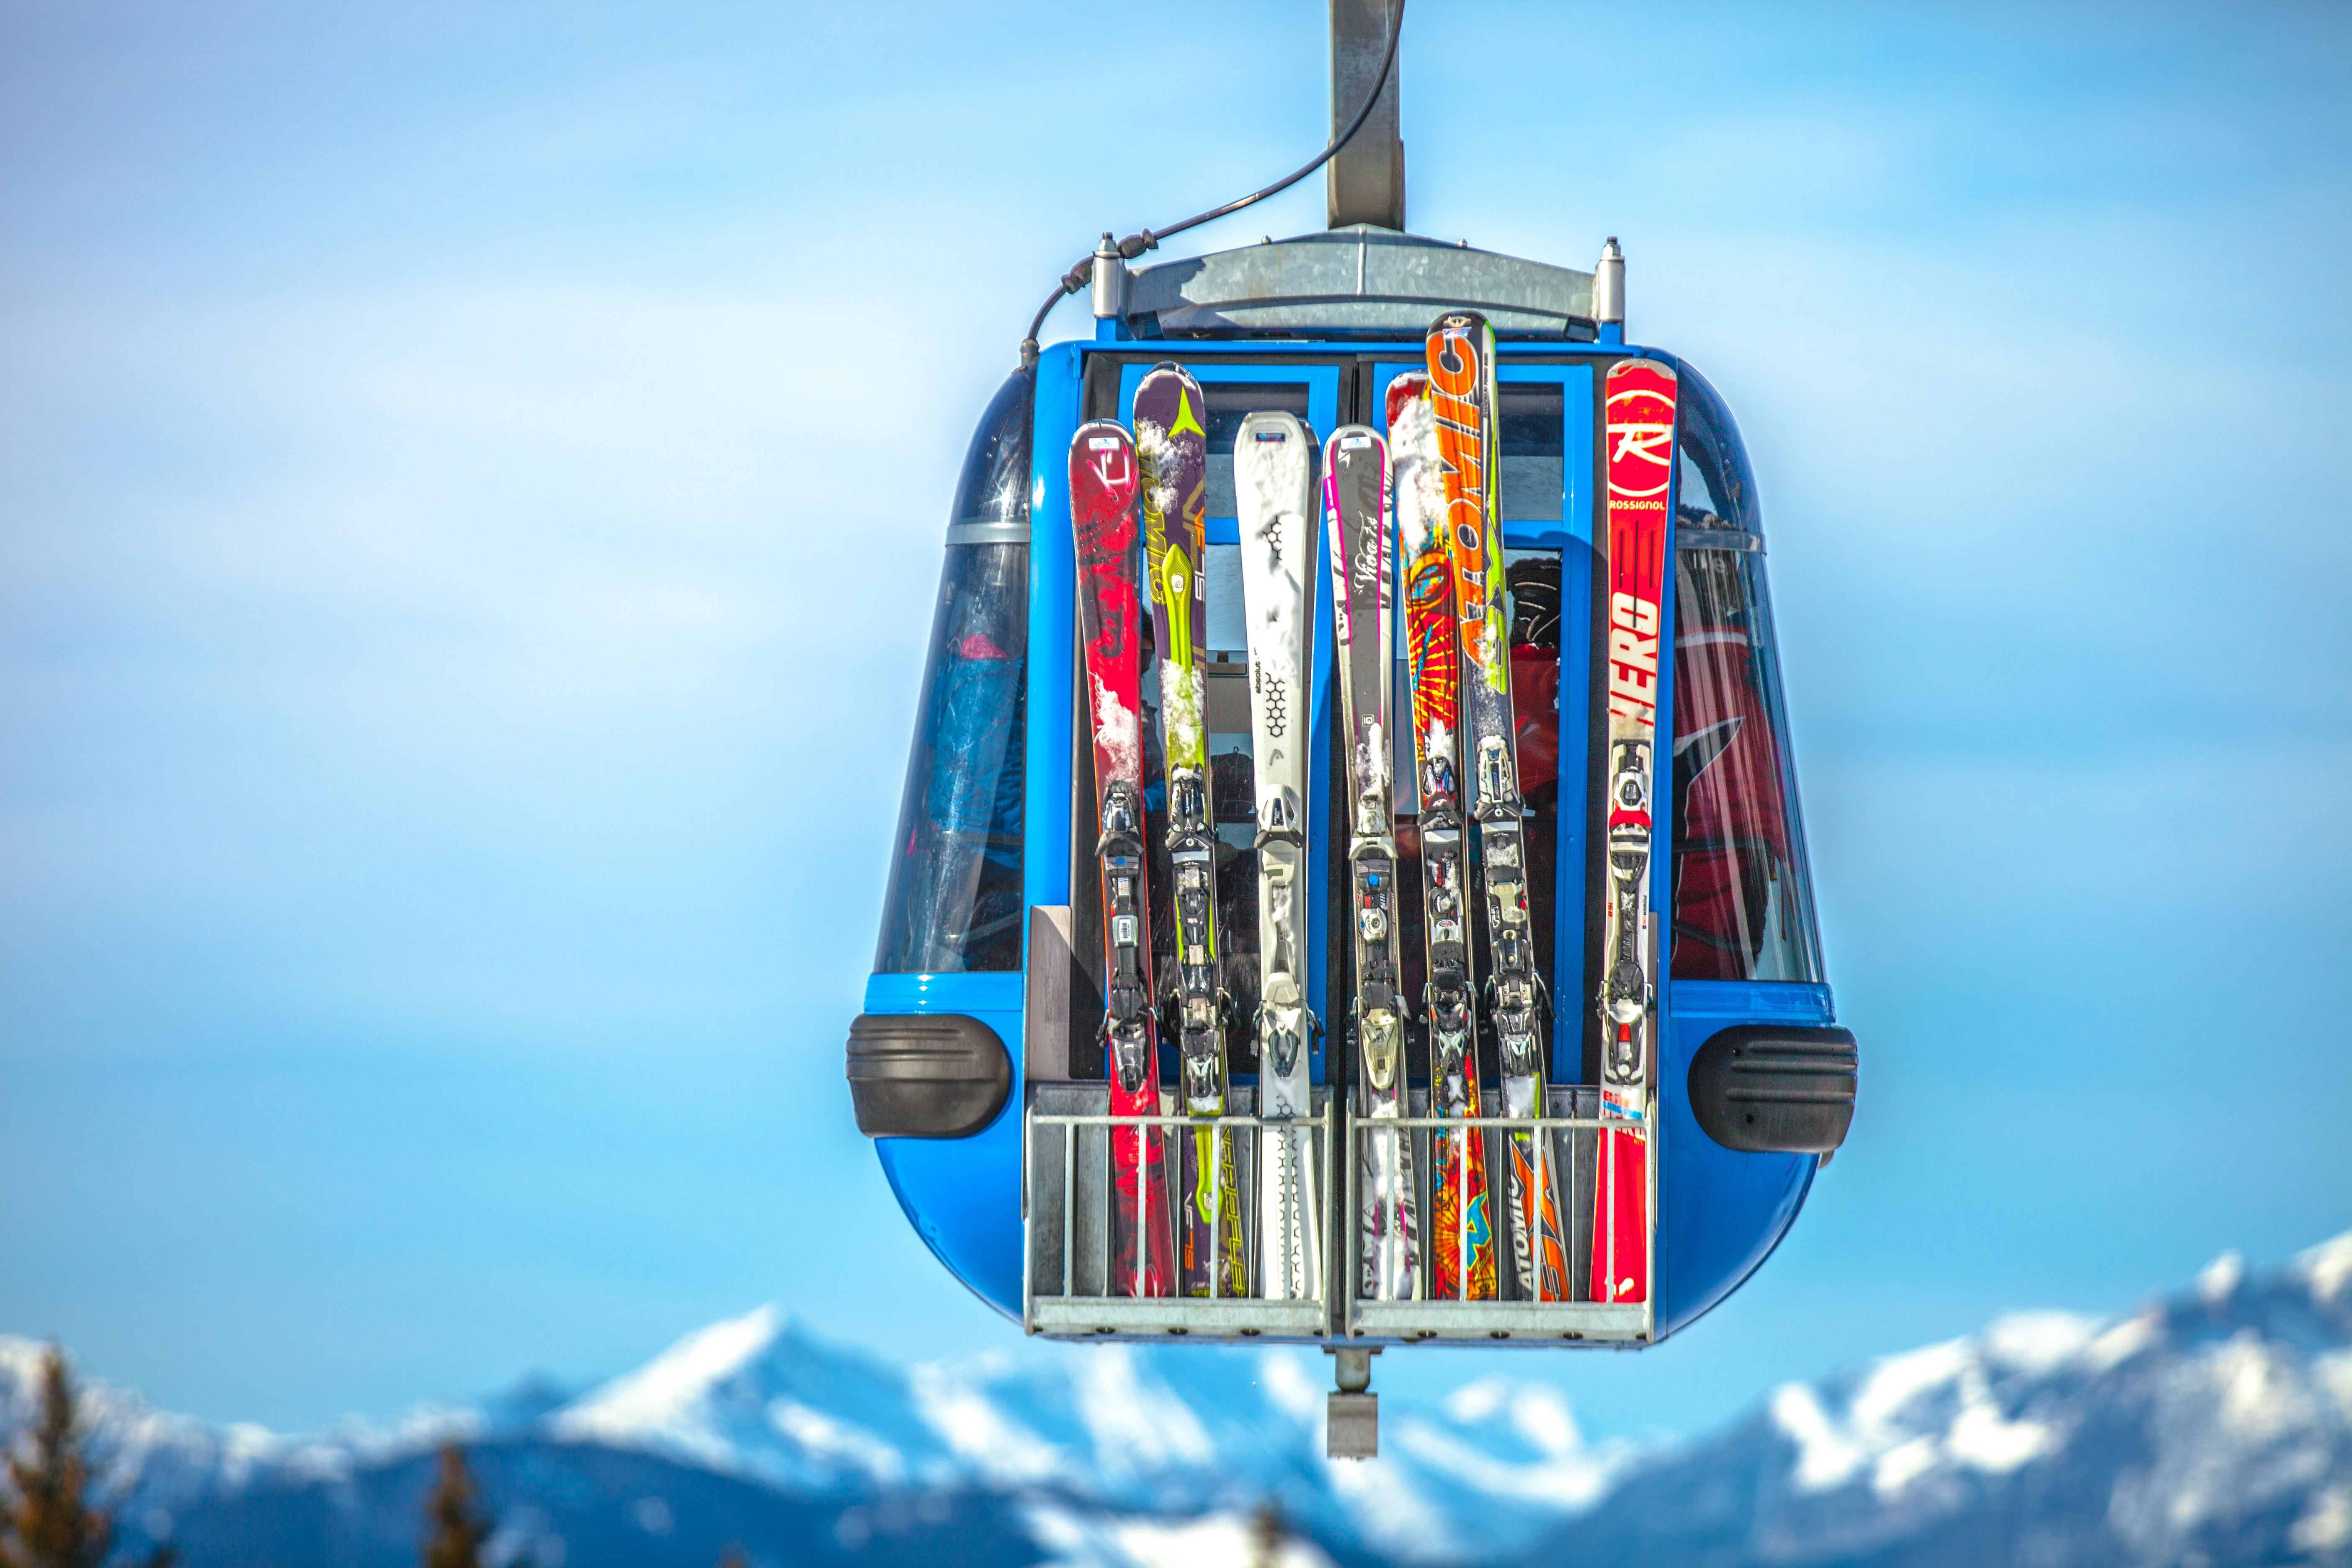 Alpybus Geneva airport transfers ski lift skis